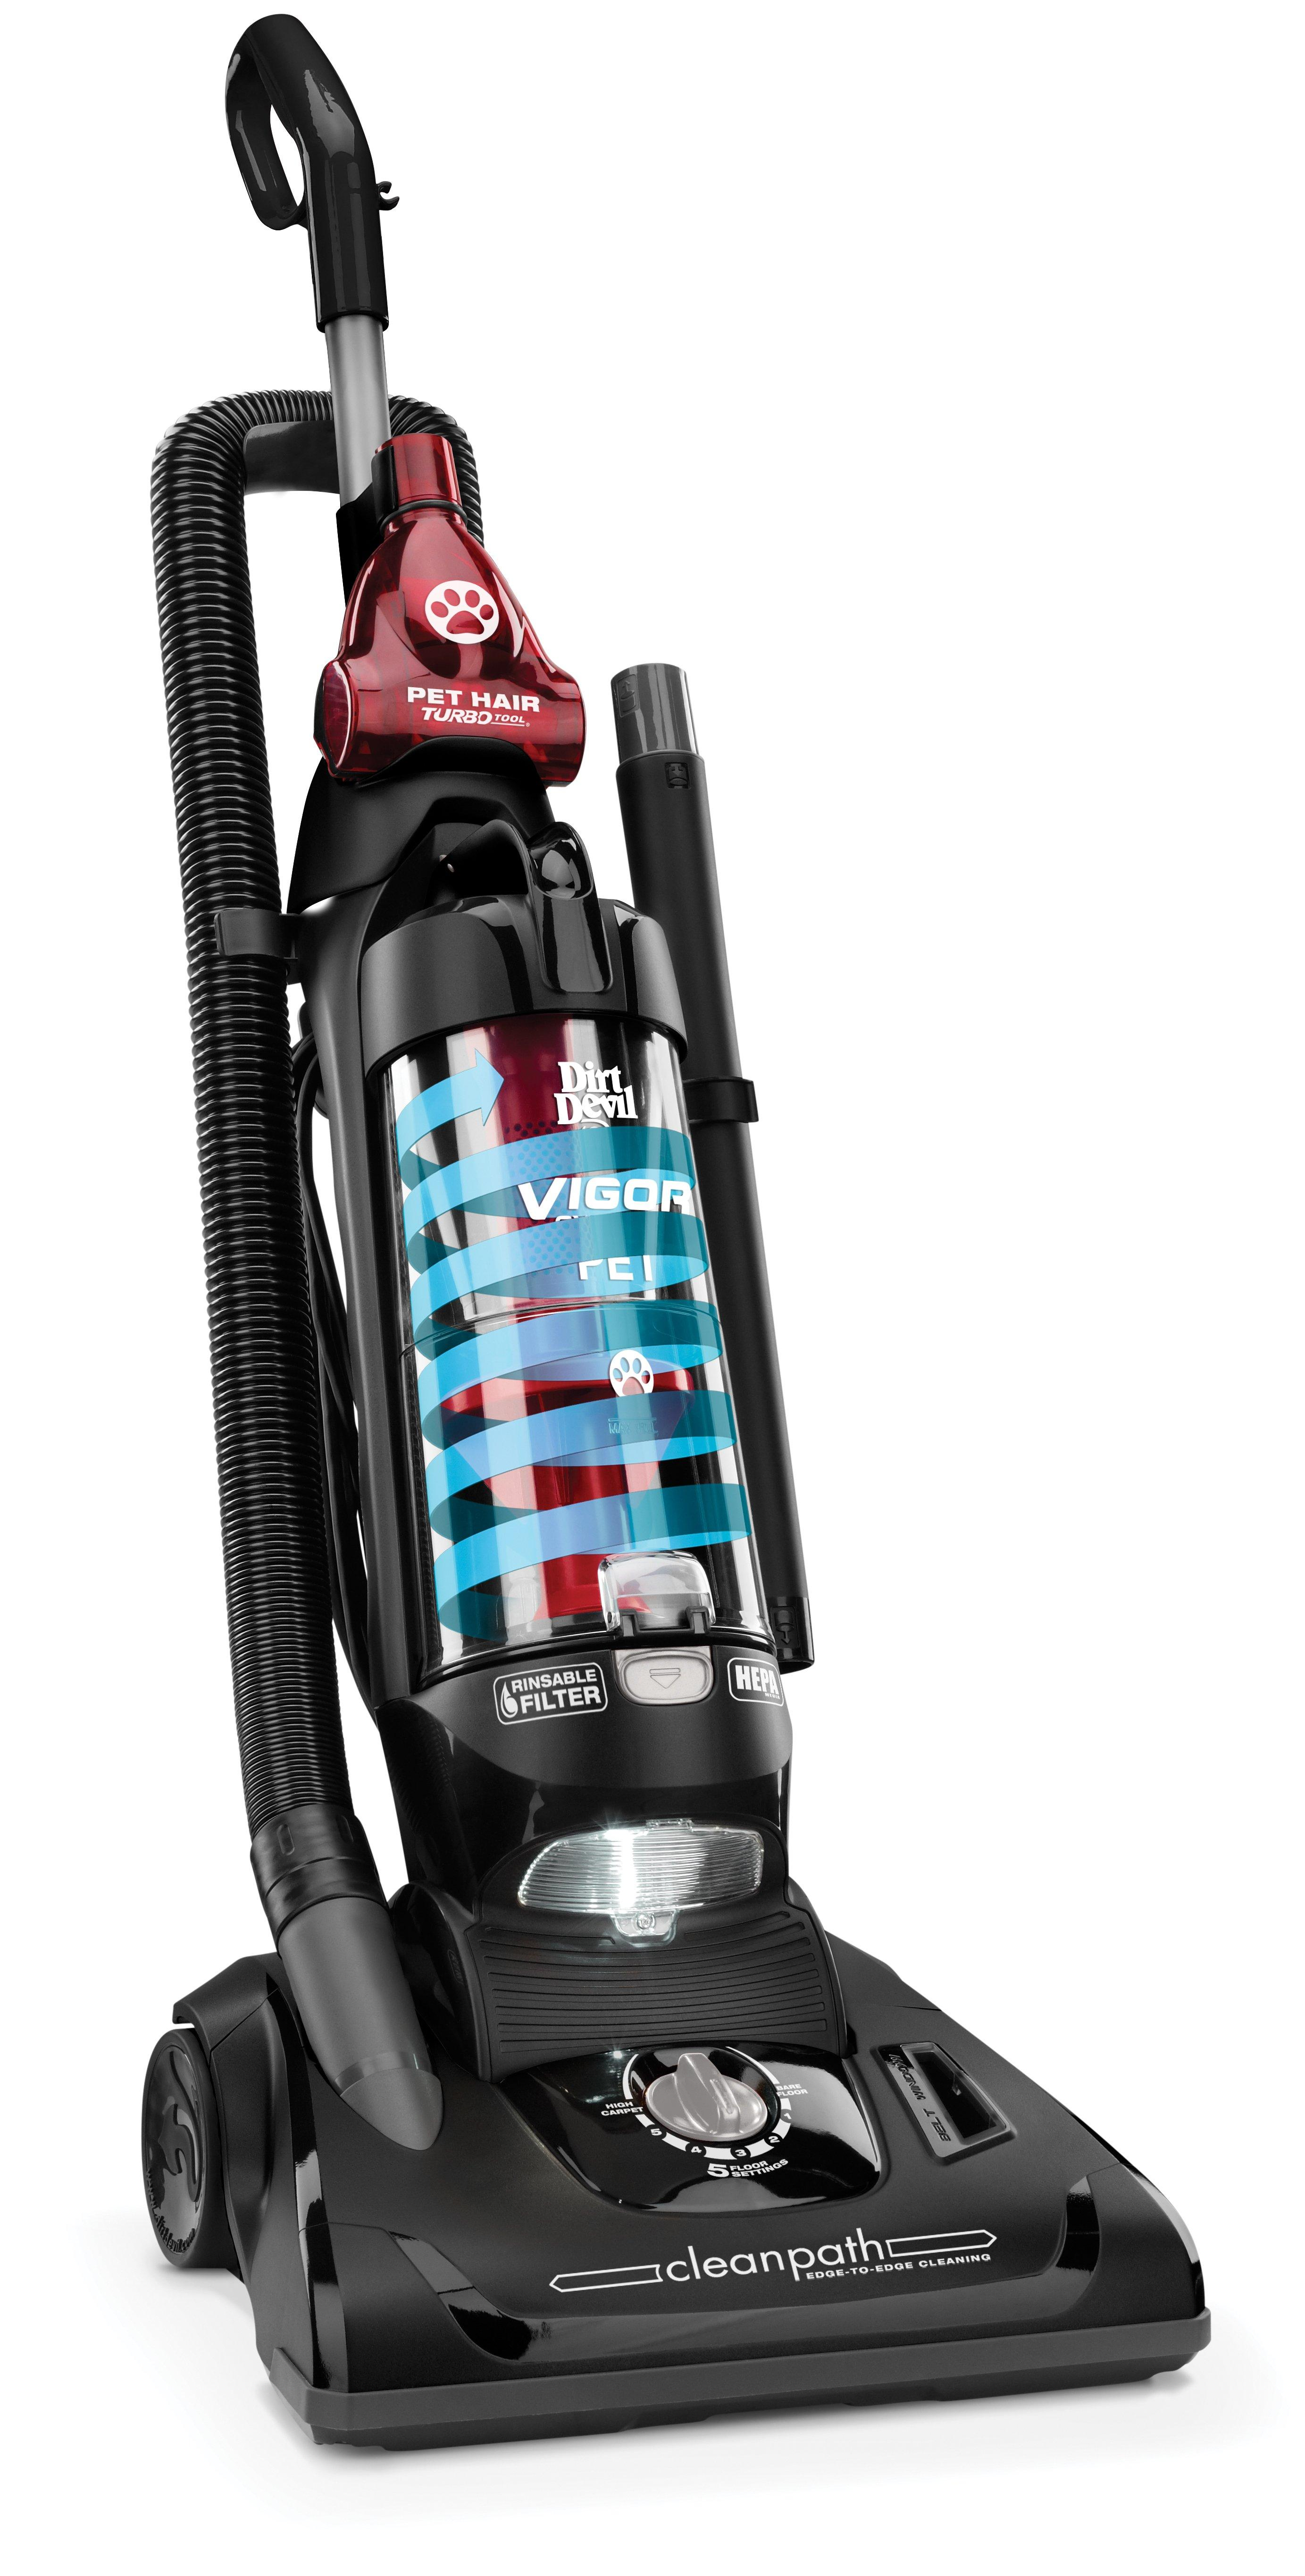 Dirt Devil Vigor Pet Cyclonic Bagless Upright Vacuum